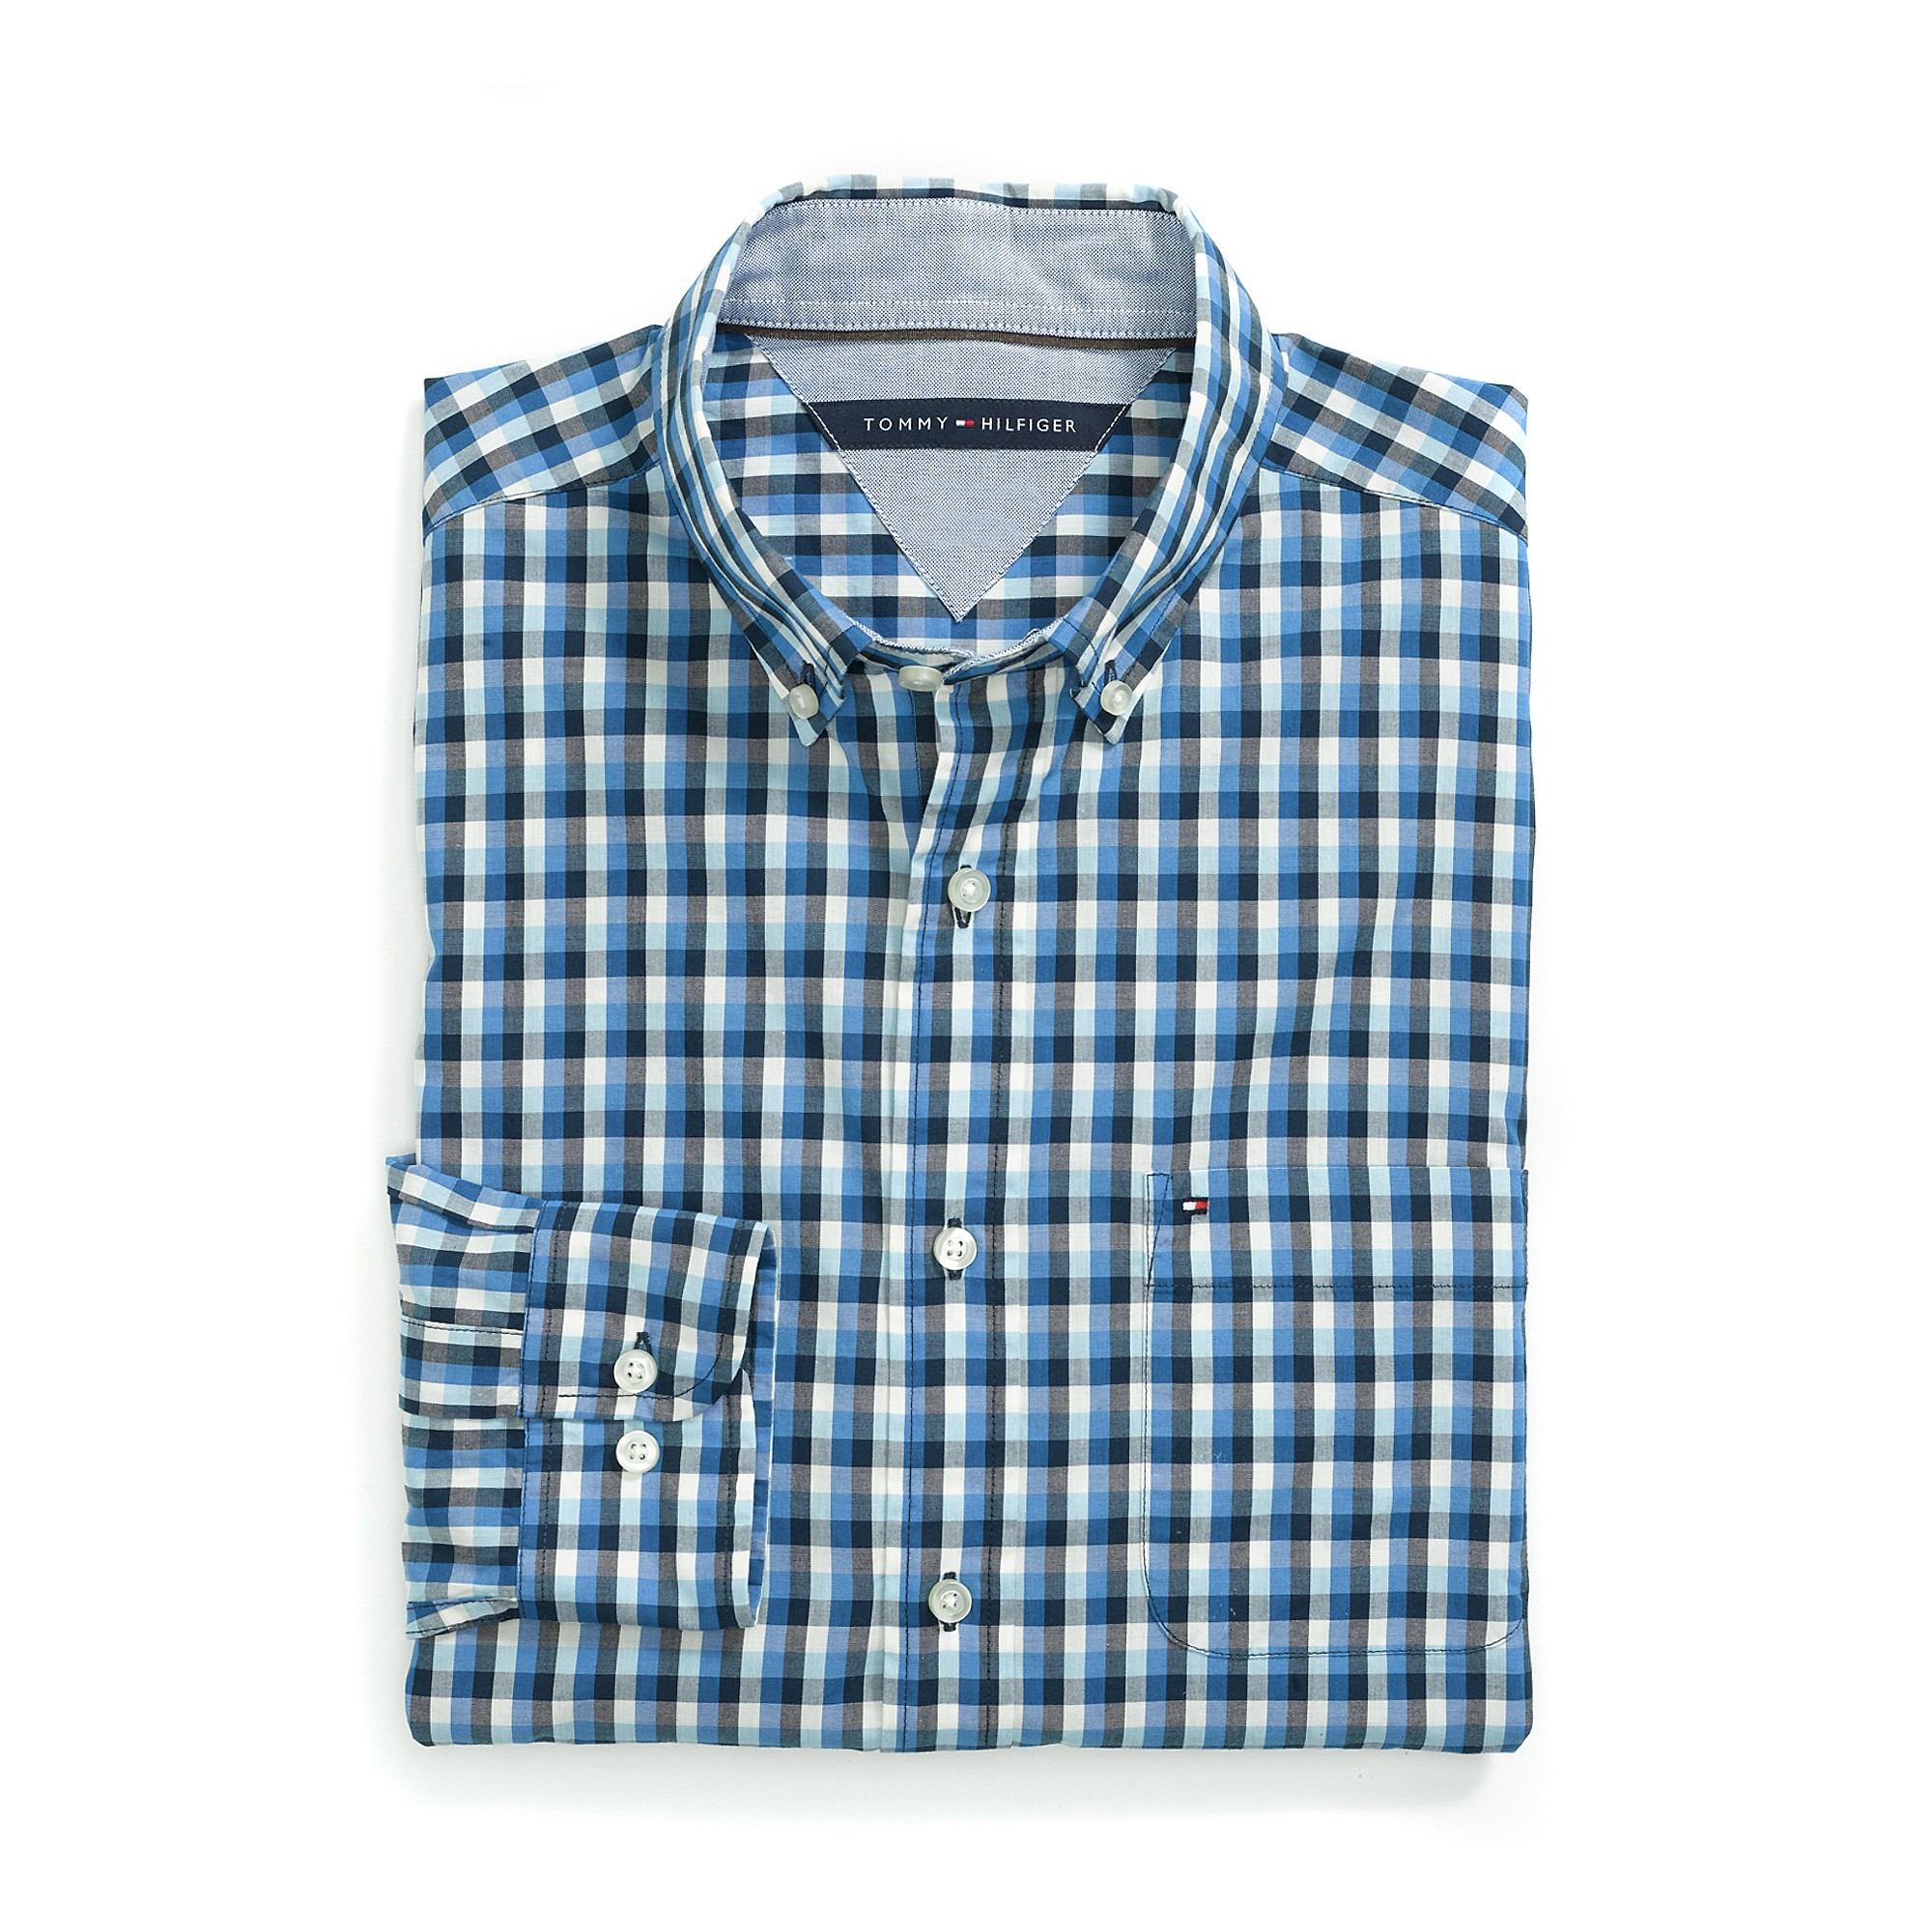 Tommy Hilfiger Blue Classic Fit Gingham Shirt For Men Lyst